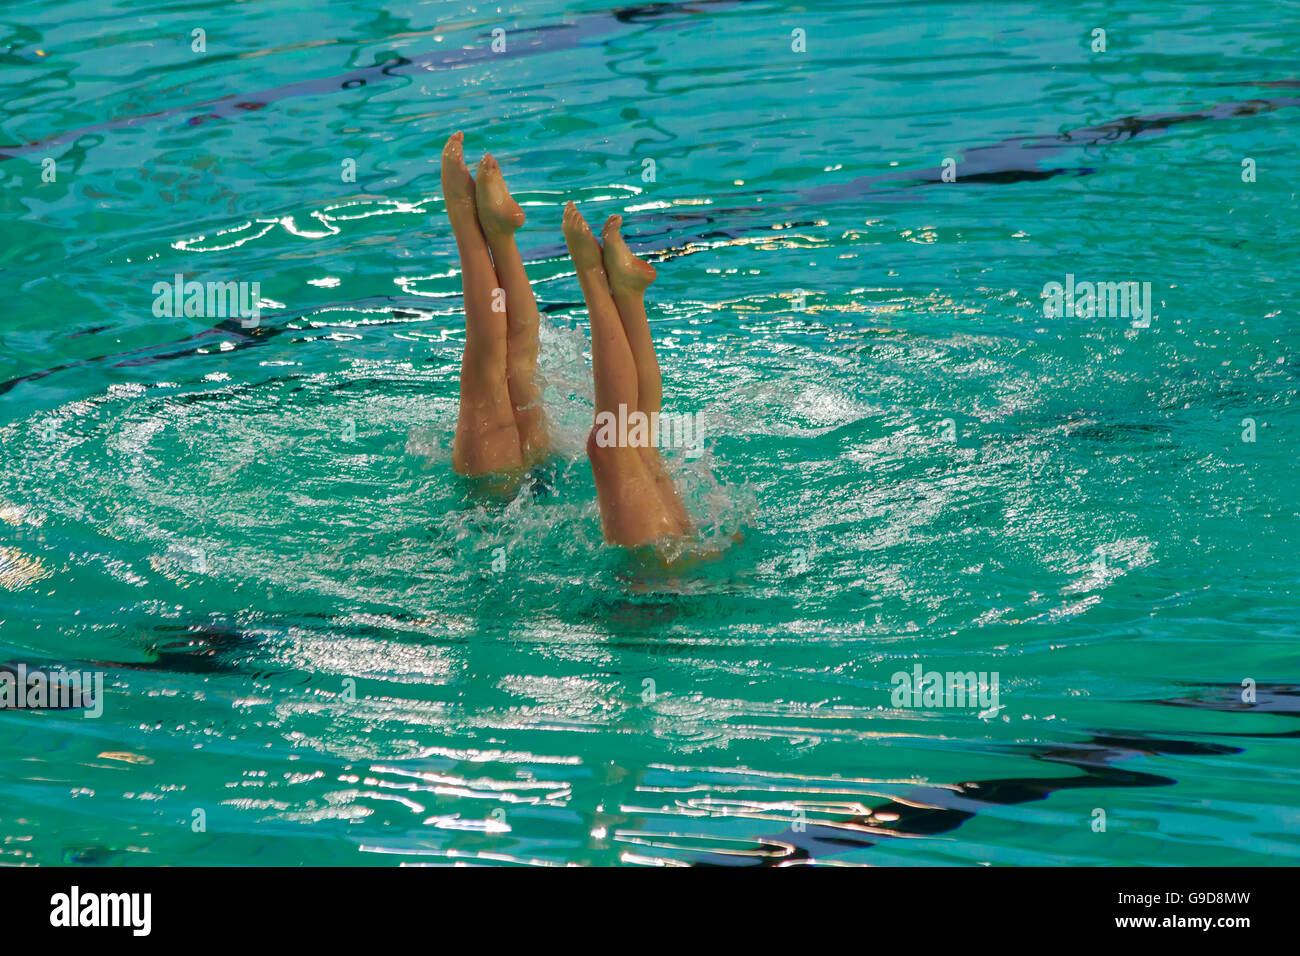 two athletes synchronized swimming during a competion running an upside remaining in apnoea with the legs and feet - Stock Image